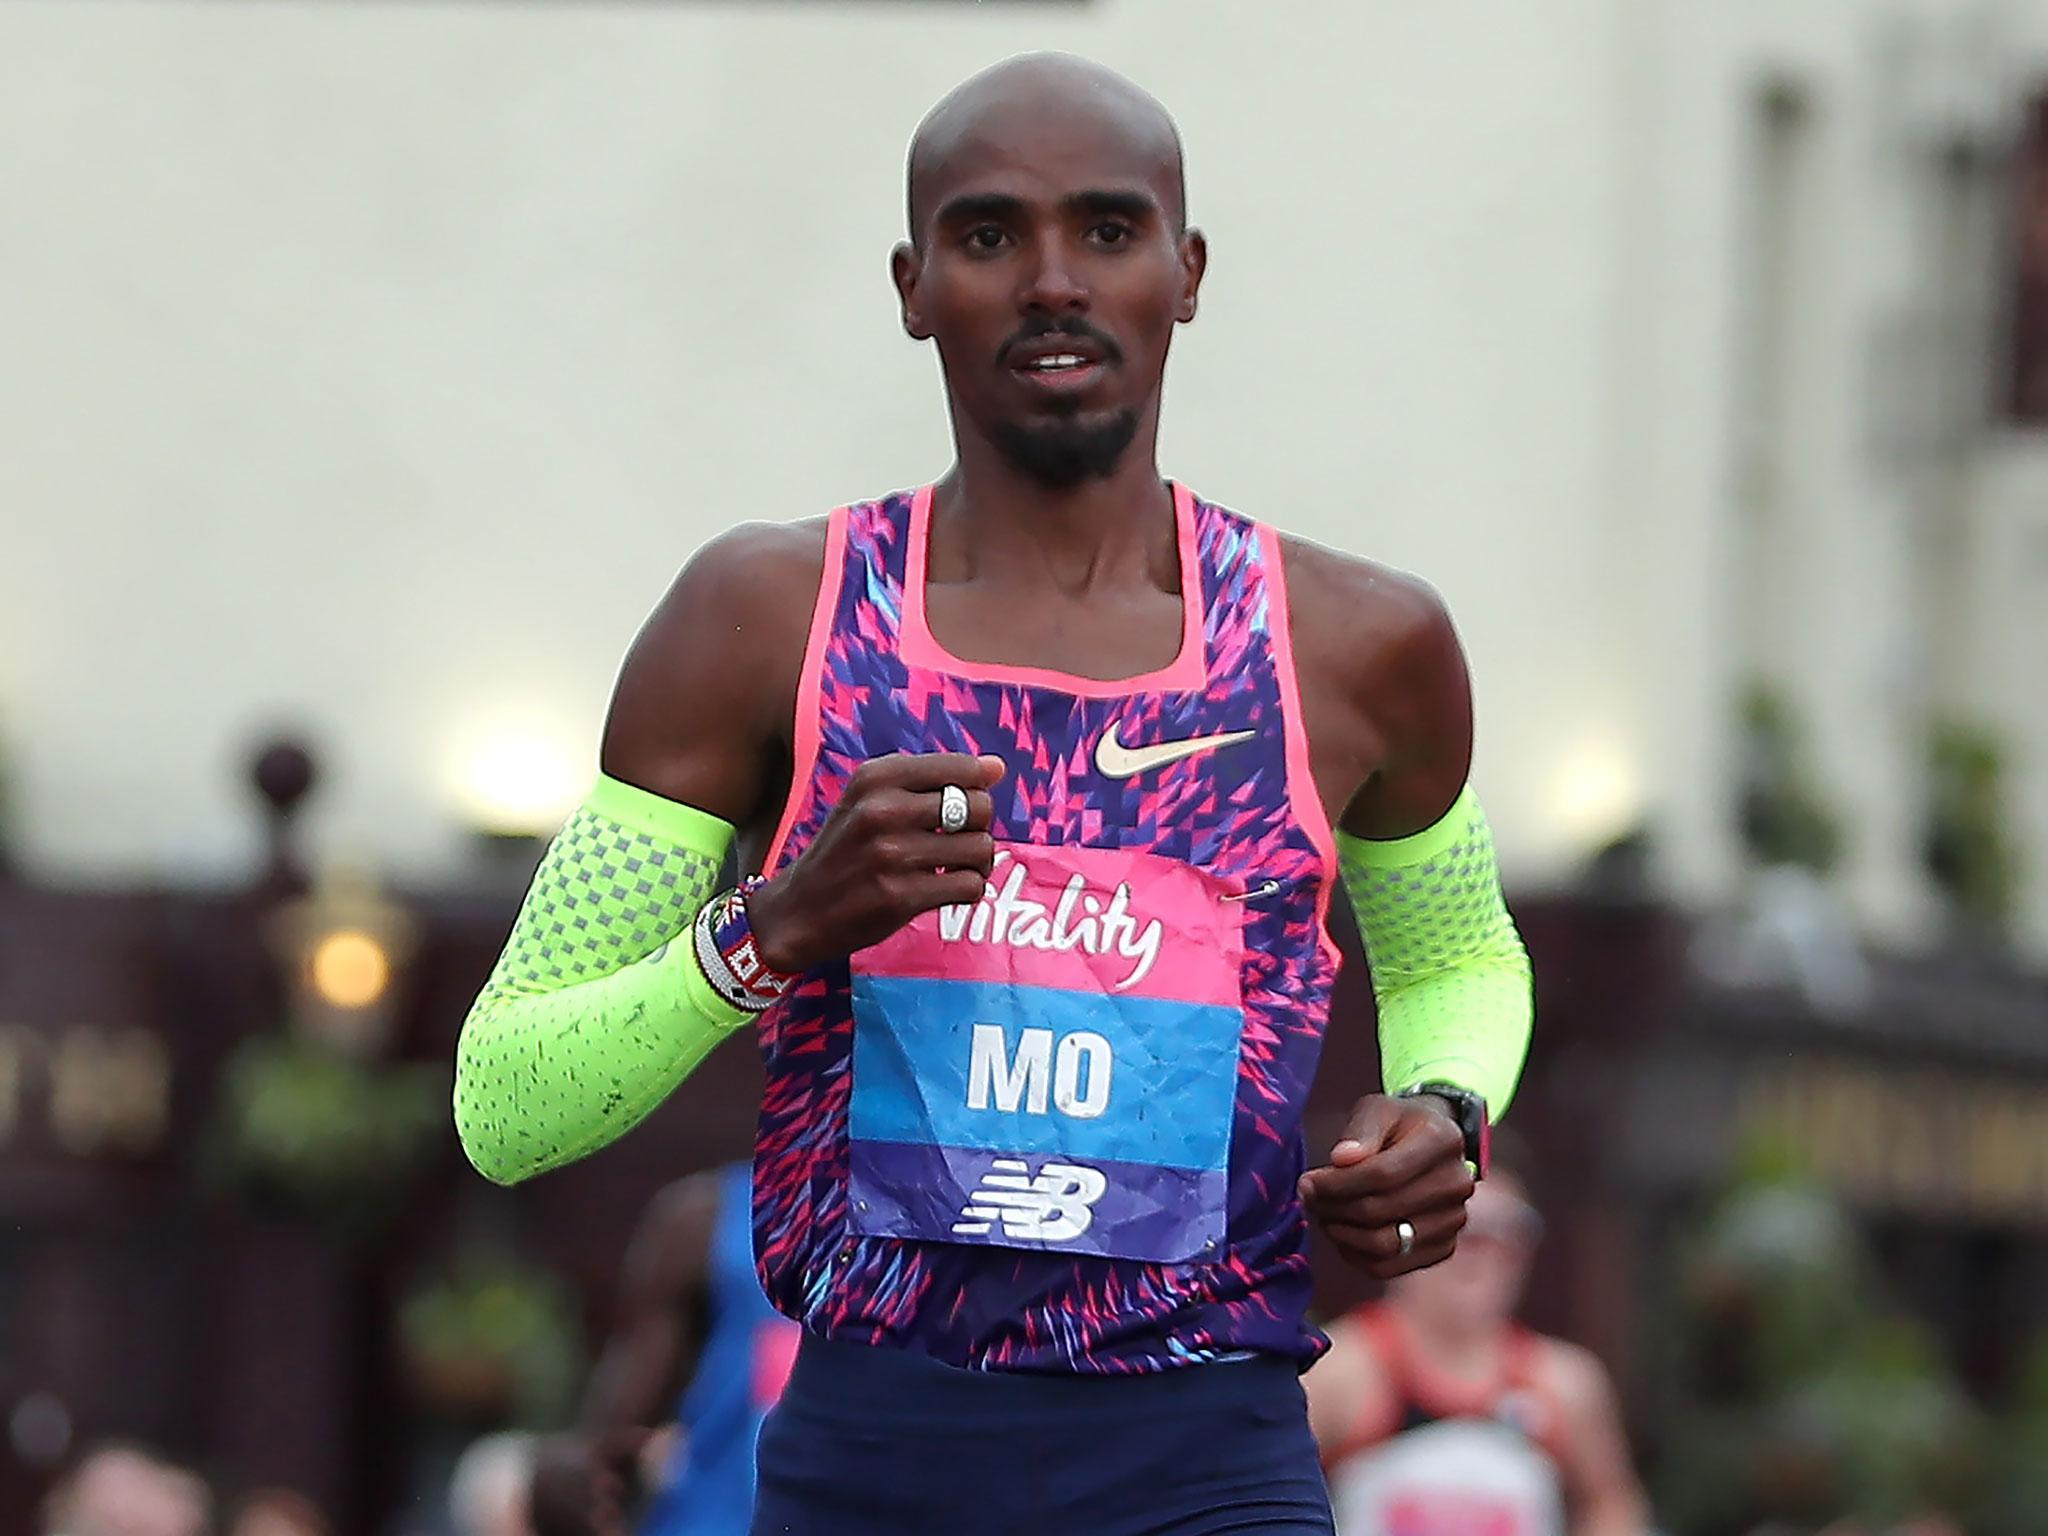 Sir Mo Farah stands by claim that he was racially harassed at Munich airport by German police